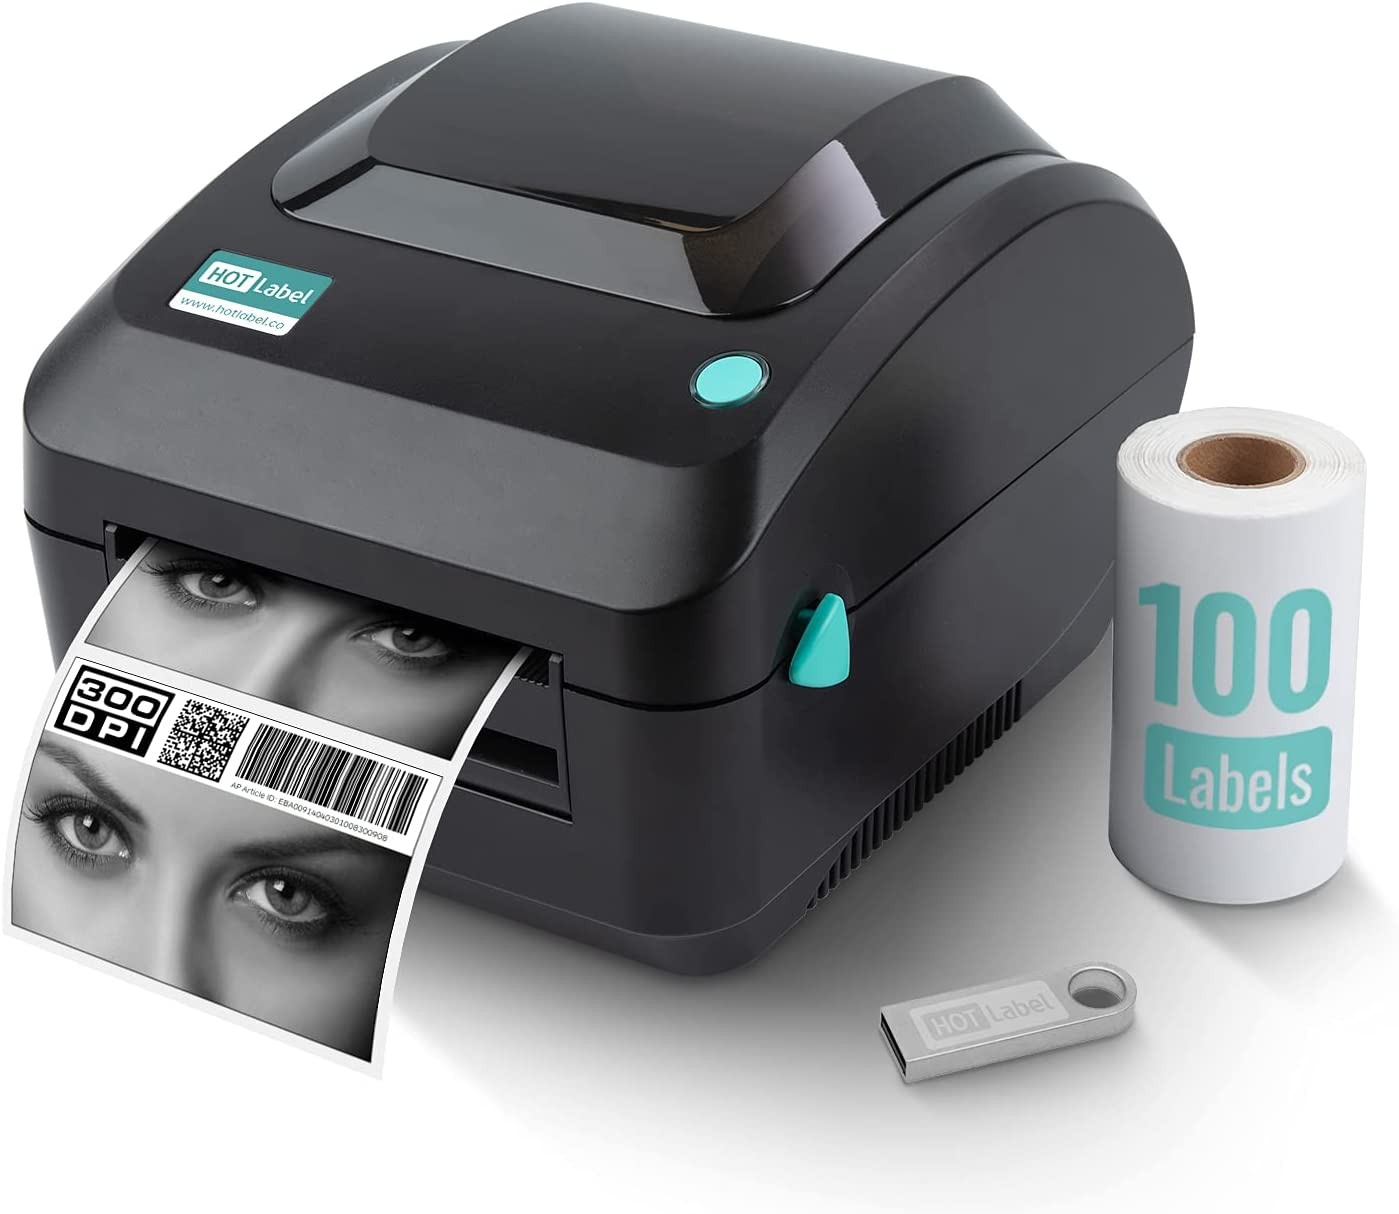 HotLabel 300 Austin Mall DPI Shipping Label Printer 4x6 Direct A300 Max 61% OFF Thermal